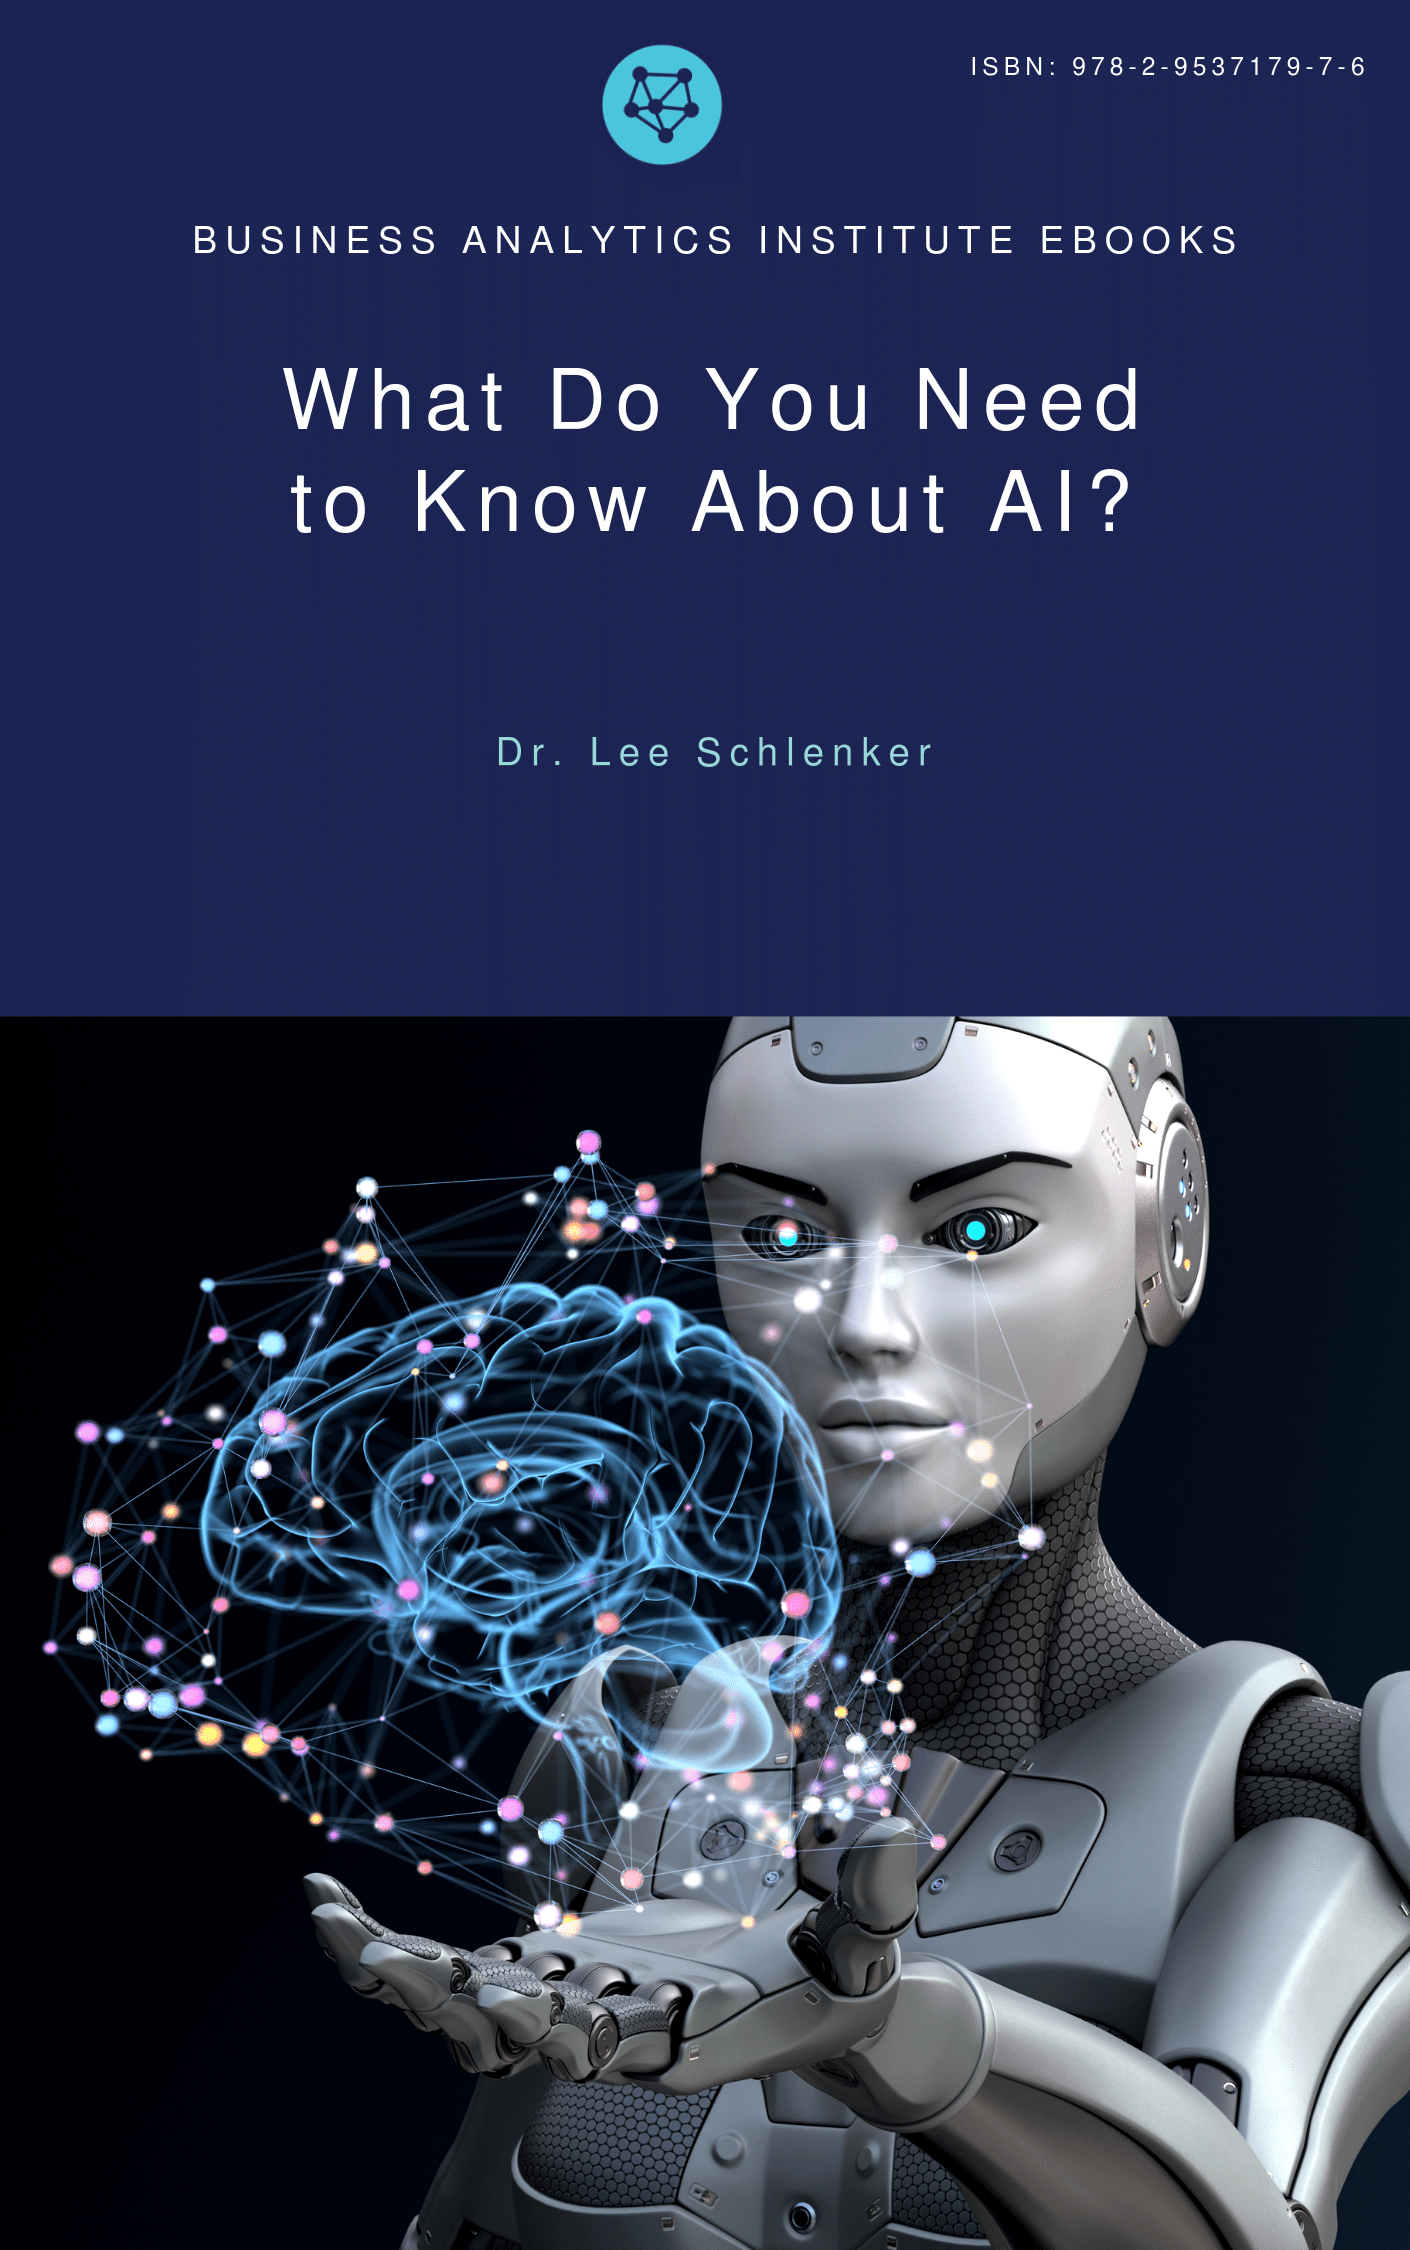 Free e-book: AI for Management - Taking better decisions is the ultimate benchmark for improving management.Your future value as a manager will be in building and evaluating teams of judgement savvy employees and prediction-focused AI agents. Your Return on Investment in Artificial Intelligence will be linked to reducing the costs of variability in your organization and prediction in your market. What specific knowledge and skills do you need to develop today as a manager to take advantage of AI?